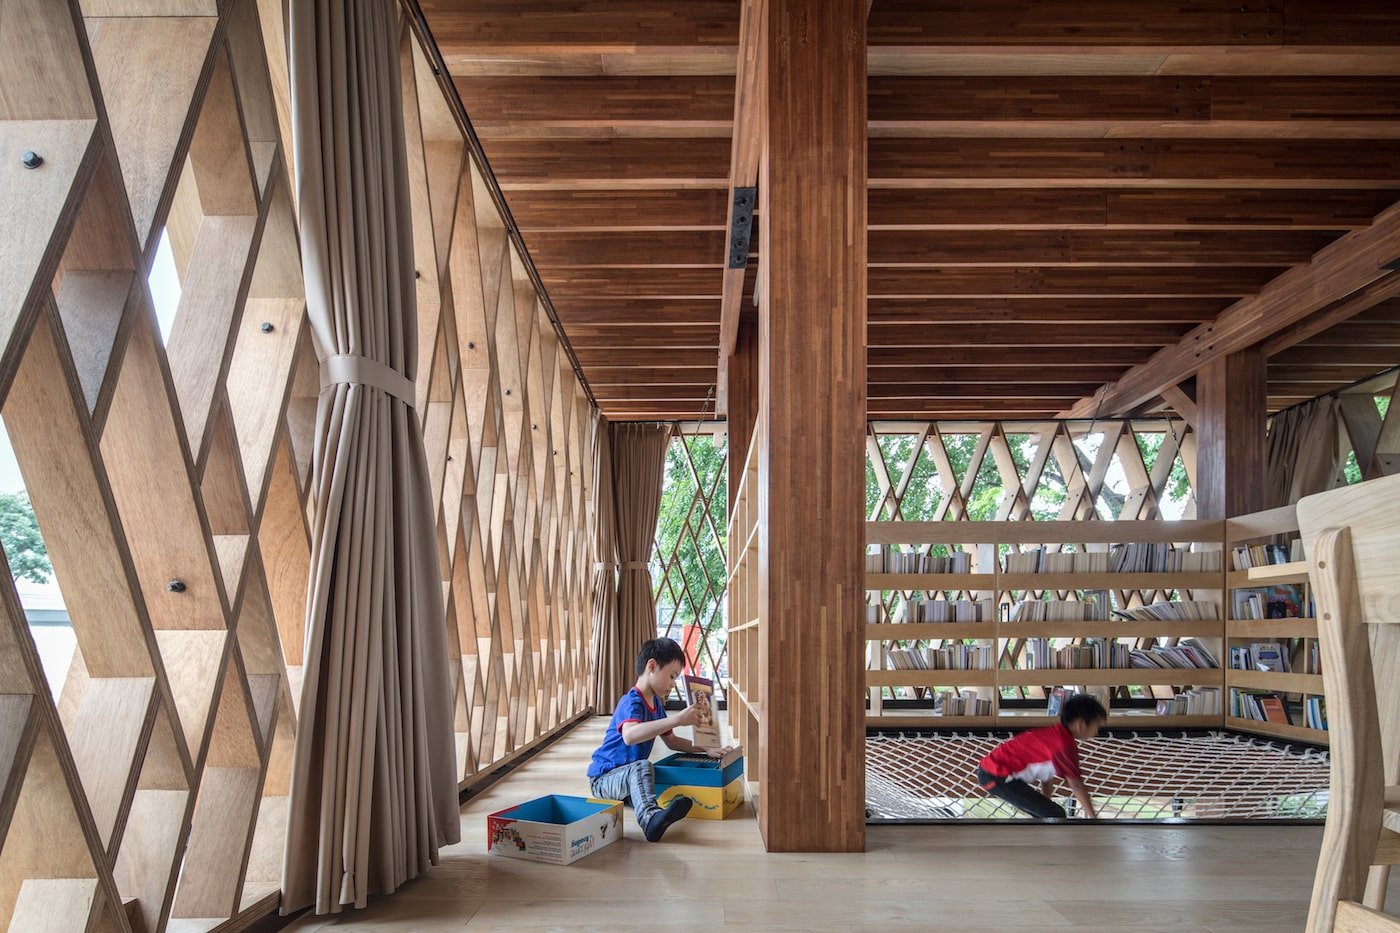 Kids playing next to books in timber library